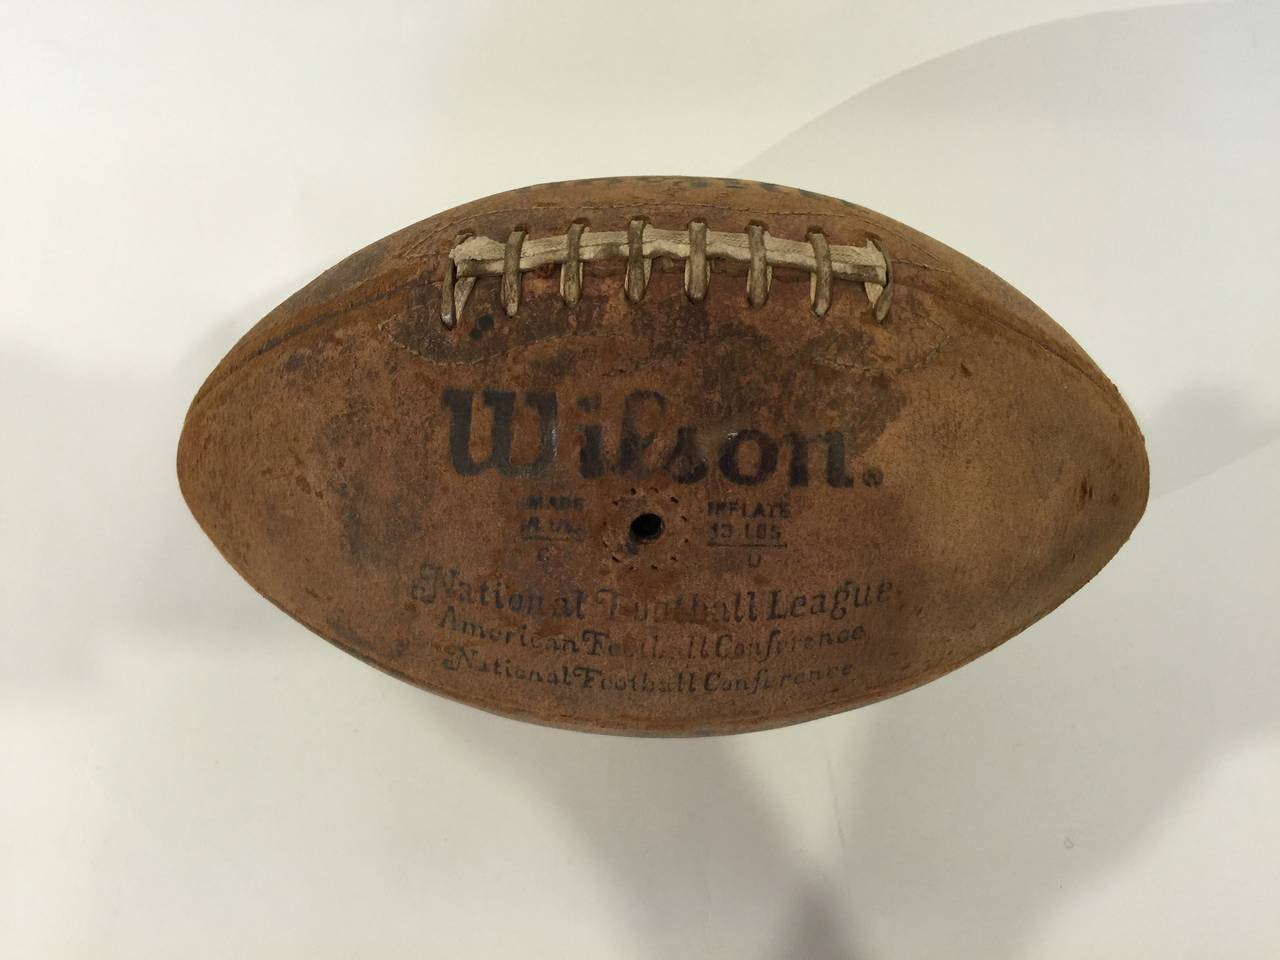 Vintage Pigskin Football by Wilson 2